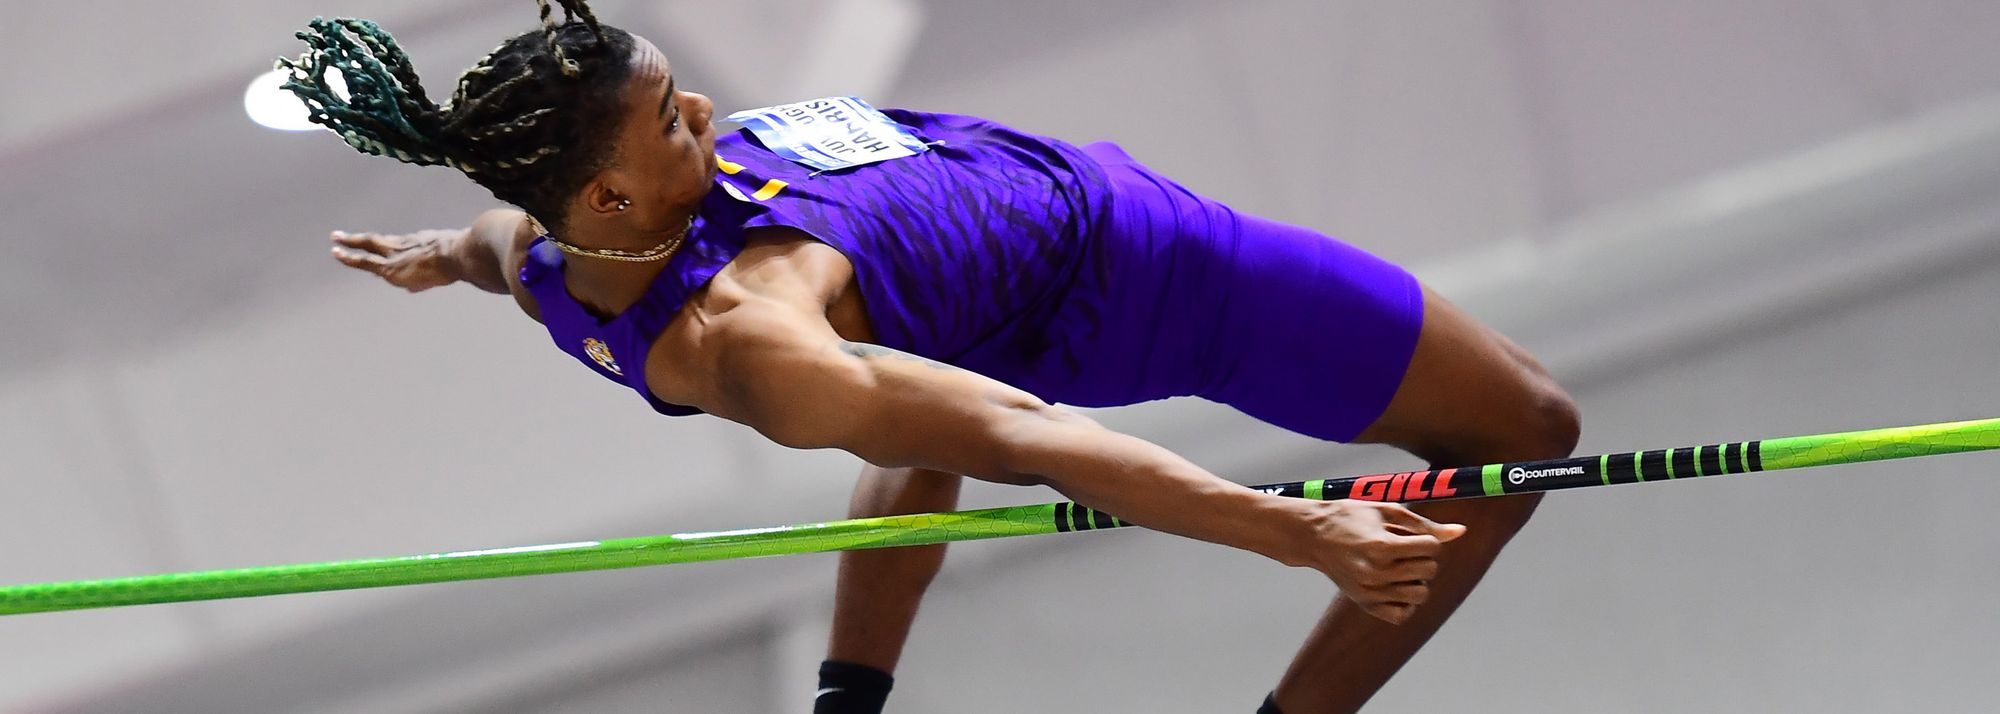 When JuVaughn Harrison leaped 8.45m at the NCCA Indoor Championships, few would have understood the significance of the achievement.